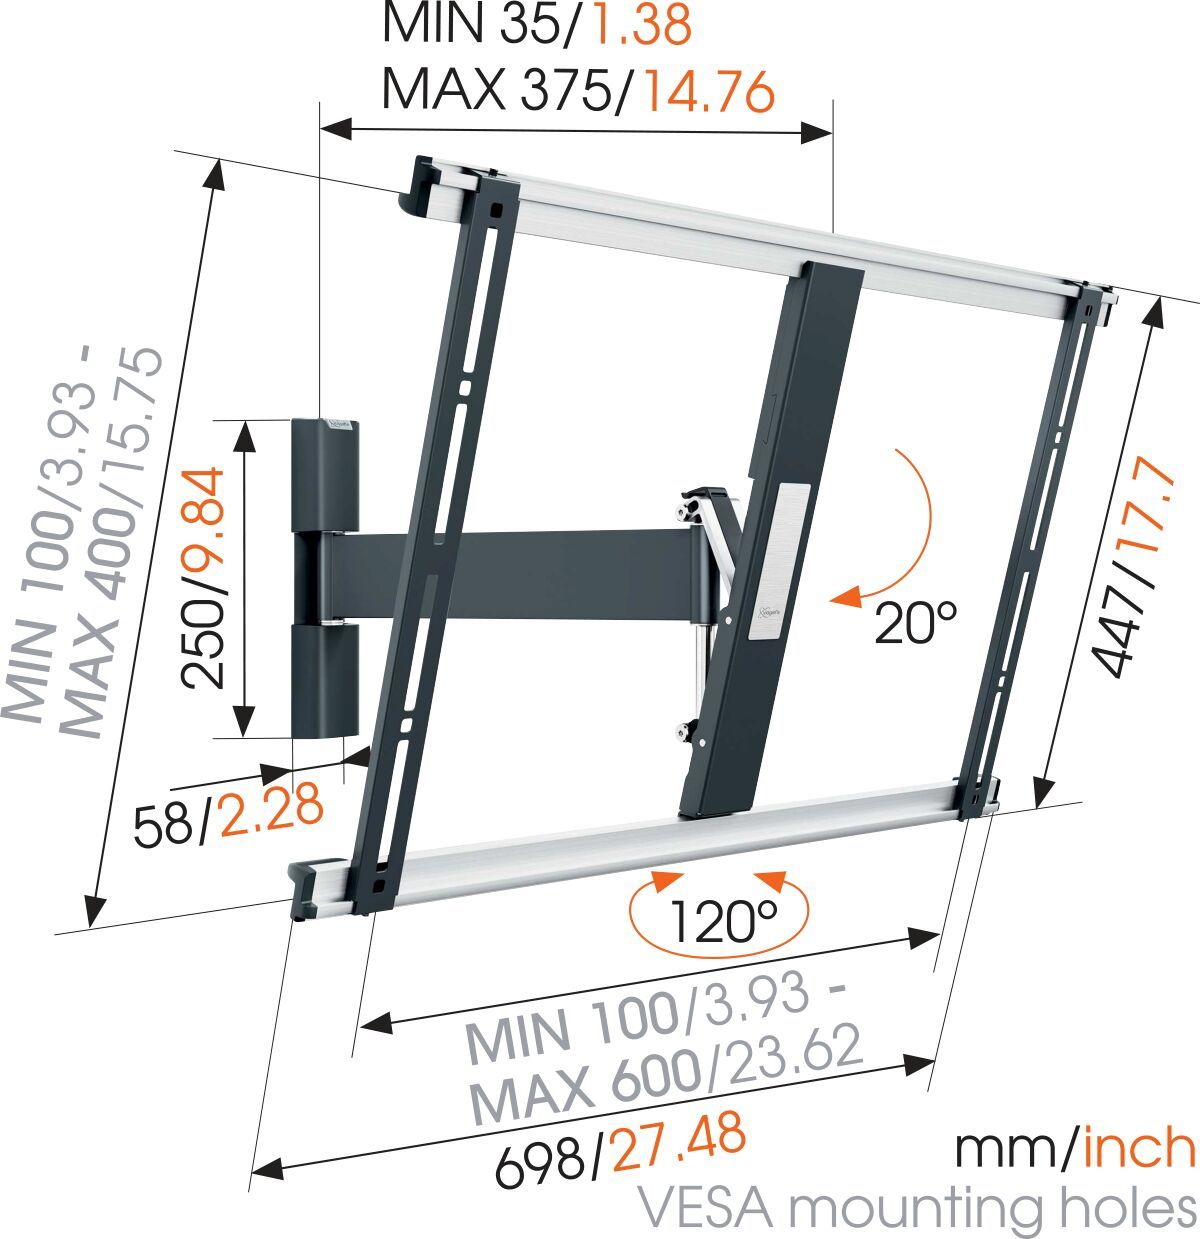 Vogel's THIN 525 ExtraThin Full-Motion TV Wall Mount - Suitable for 40 up to 65 inch TVs - Motion (up to 120°) - Tilt up to 20° - Dimensions